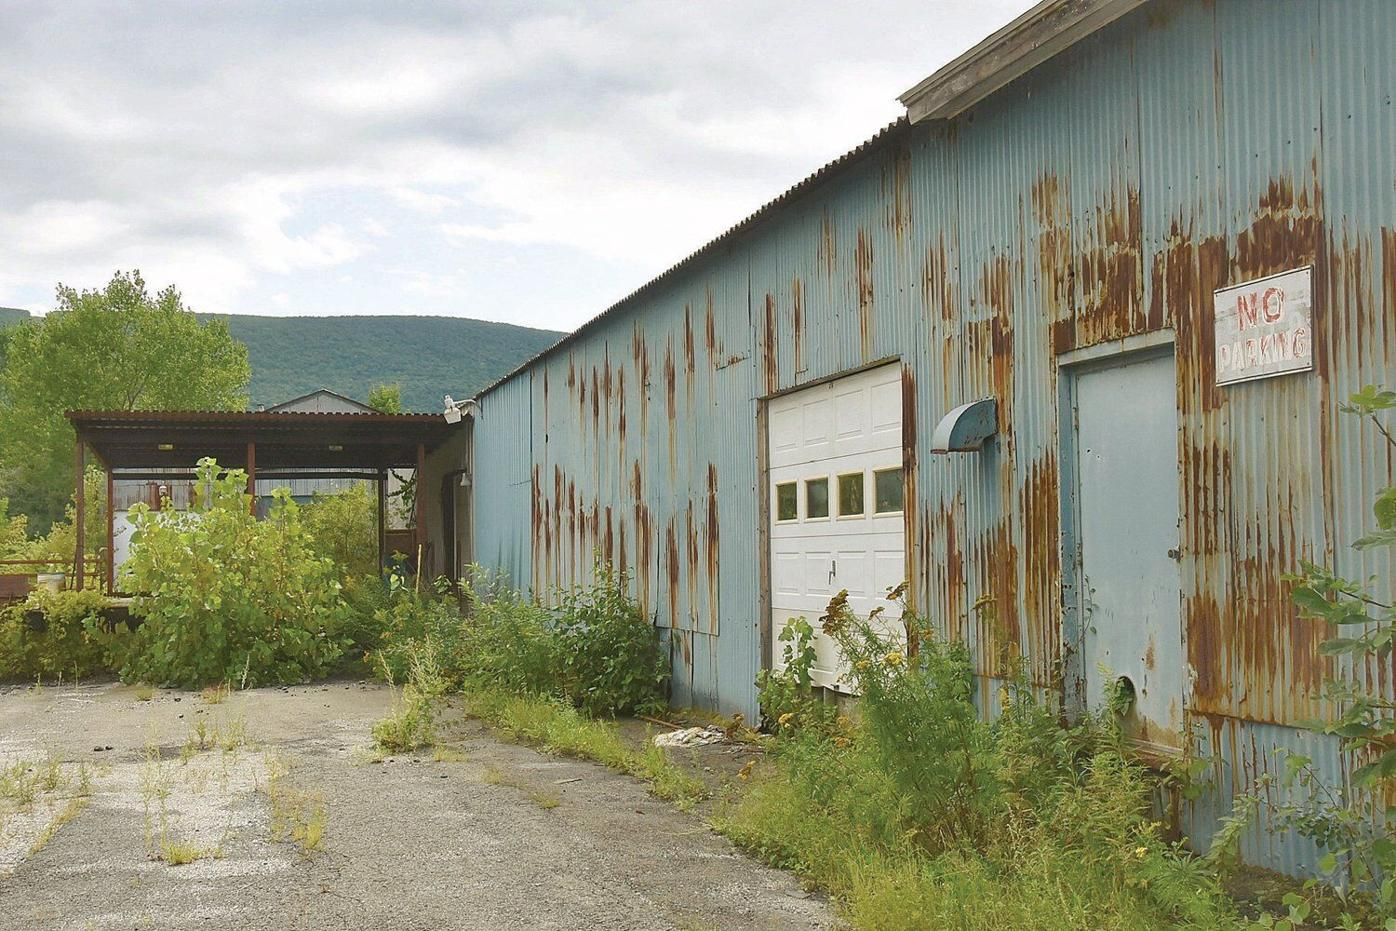 Local businesses likely to have hand in readying planned indoor pot-growing site in Adams